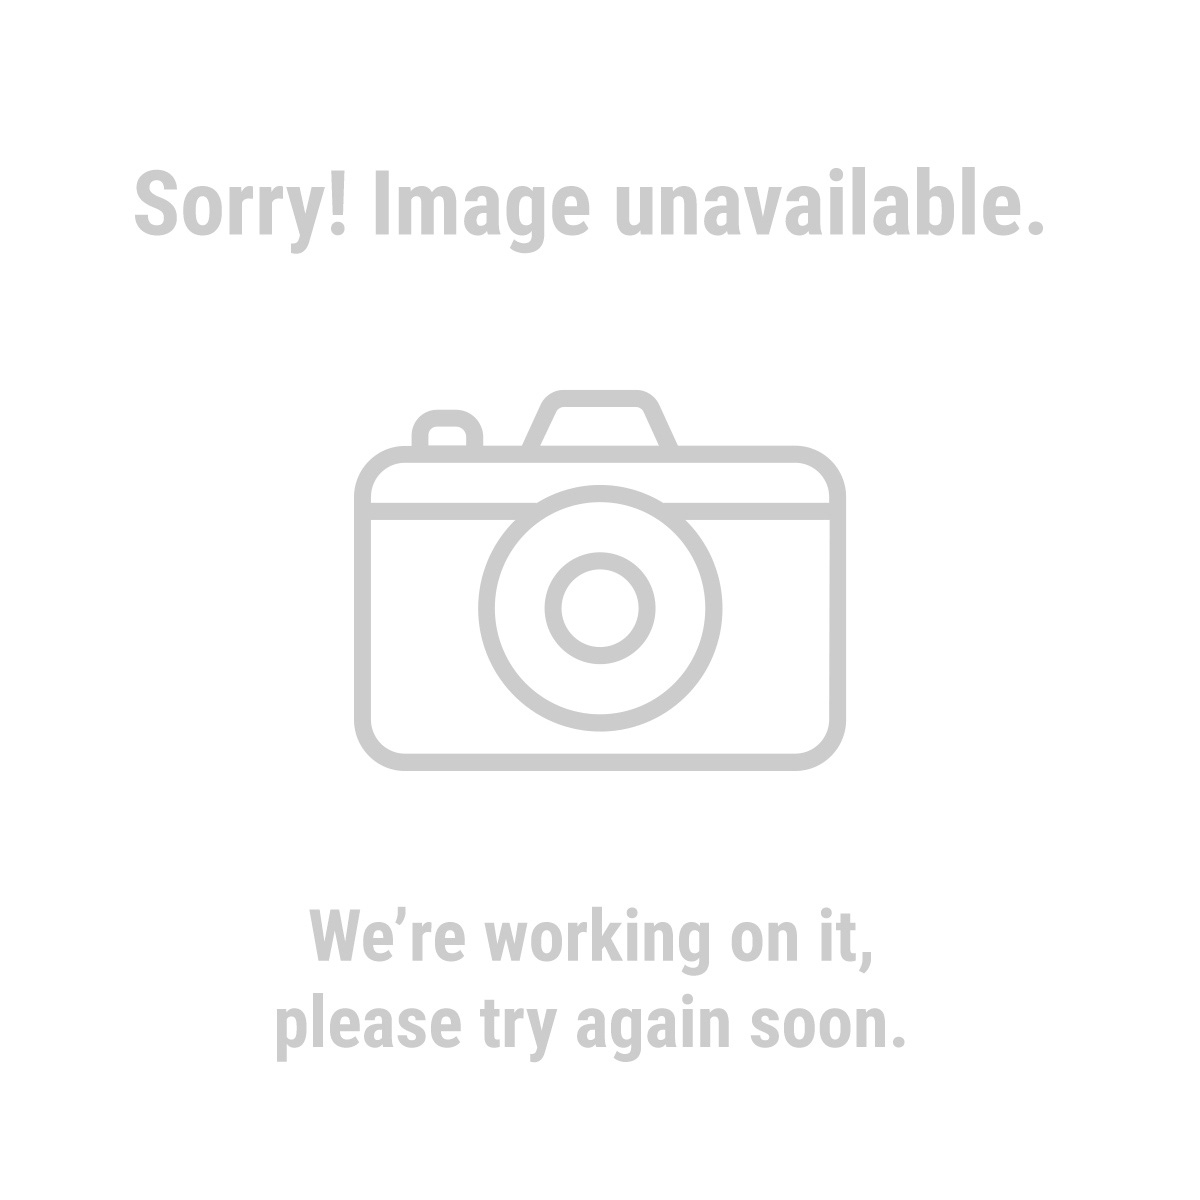 Badland Winches 61876 2000 lb. Marine Electric Winch